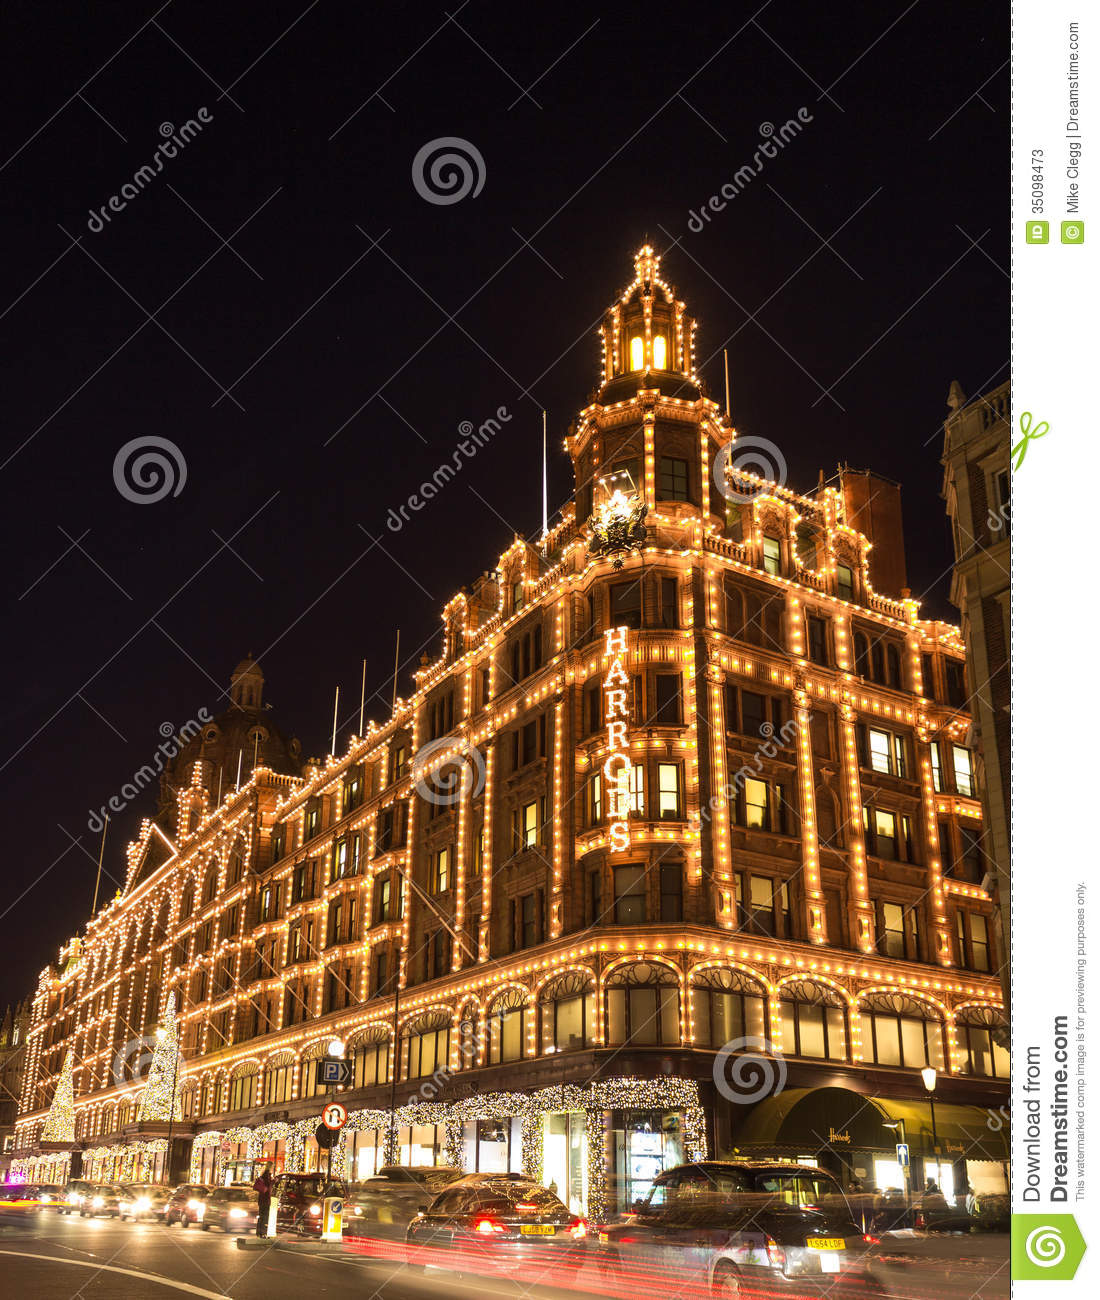 harrods lit up for christmas editorial stock photo image 35098473. Black Bedroom Furniture Sets. Home Design Ideas